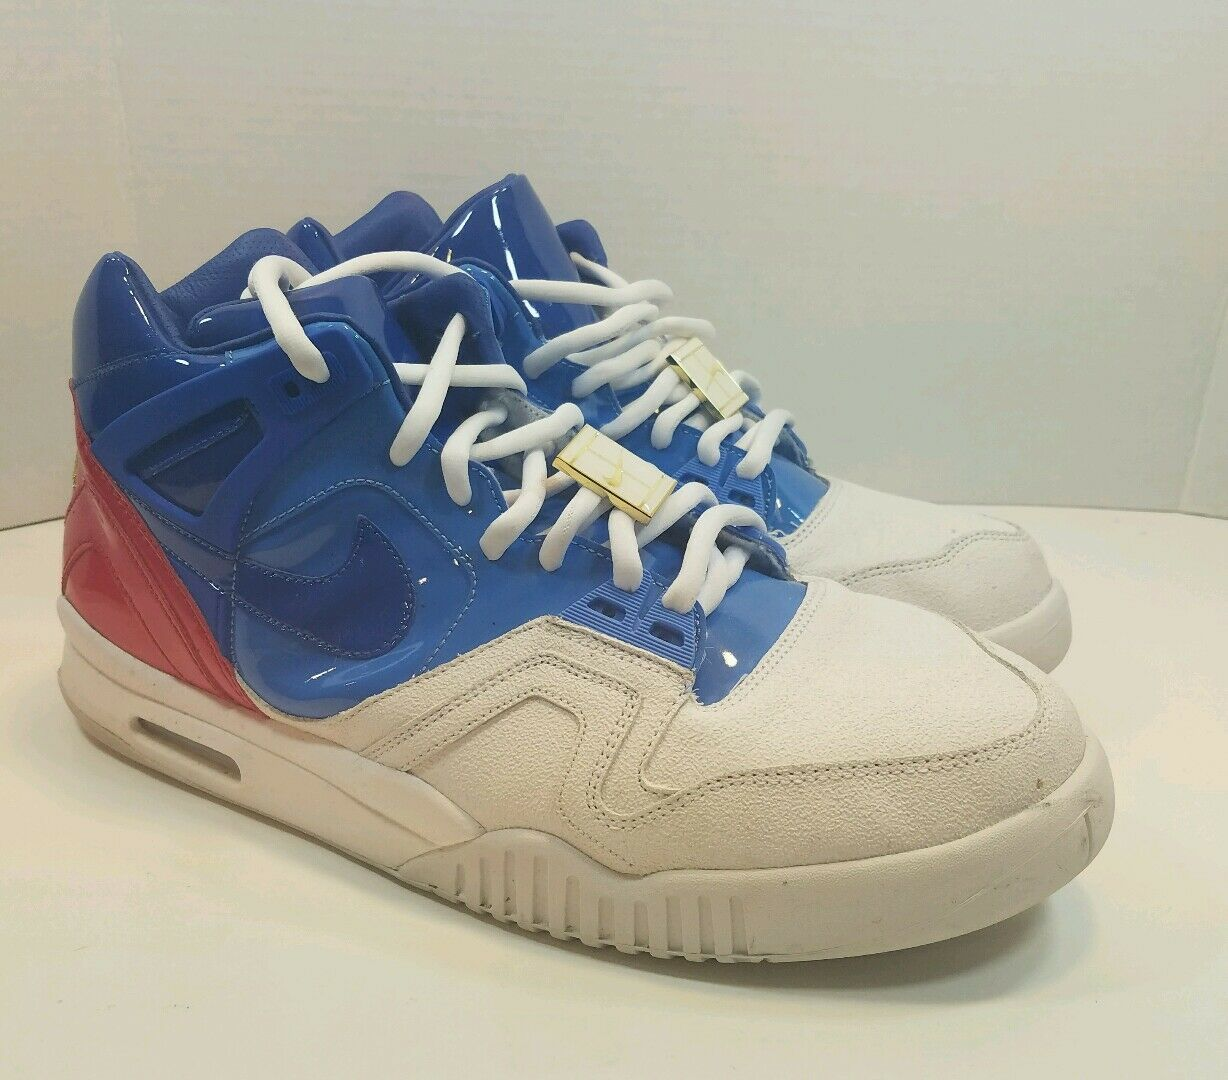 Nike Air Tech Challenge II SP - US Open - Men's Size 13 US 621358-146